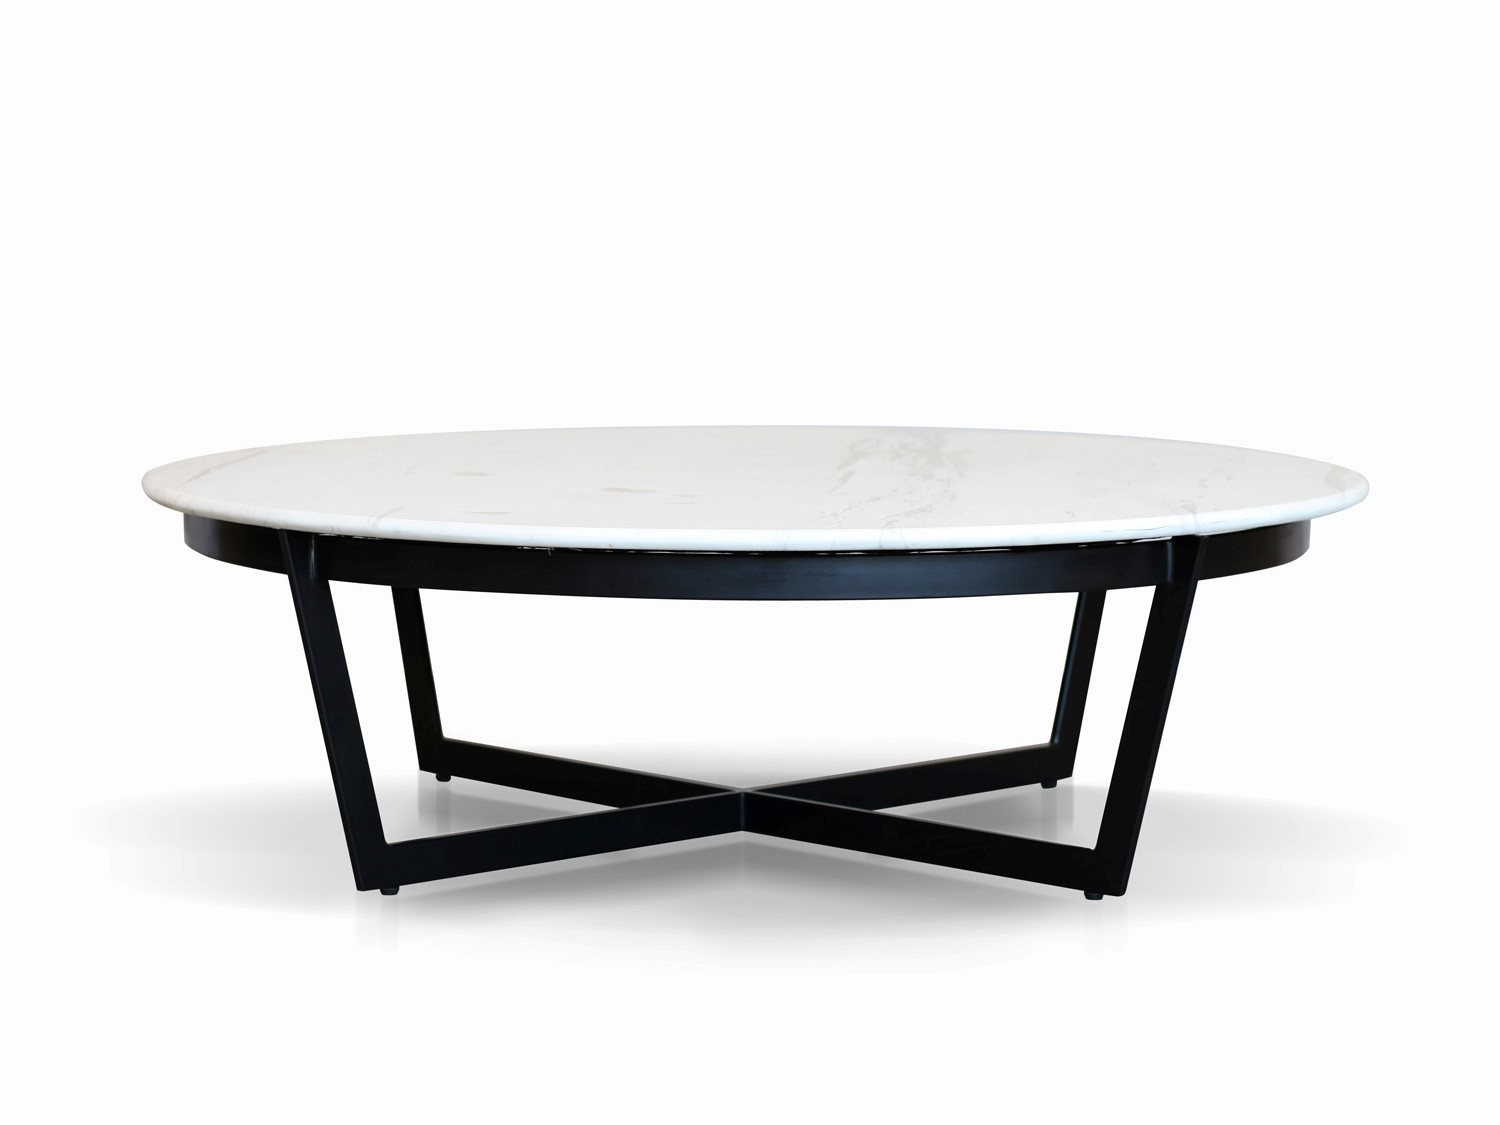 marble coffee table design photo - 9